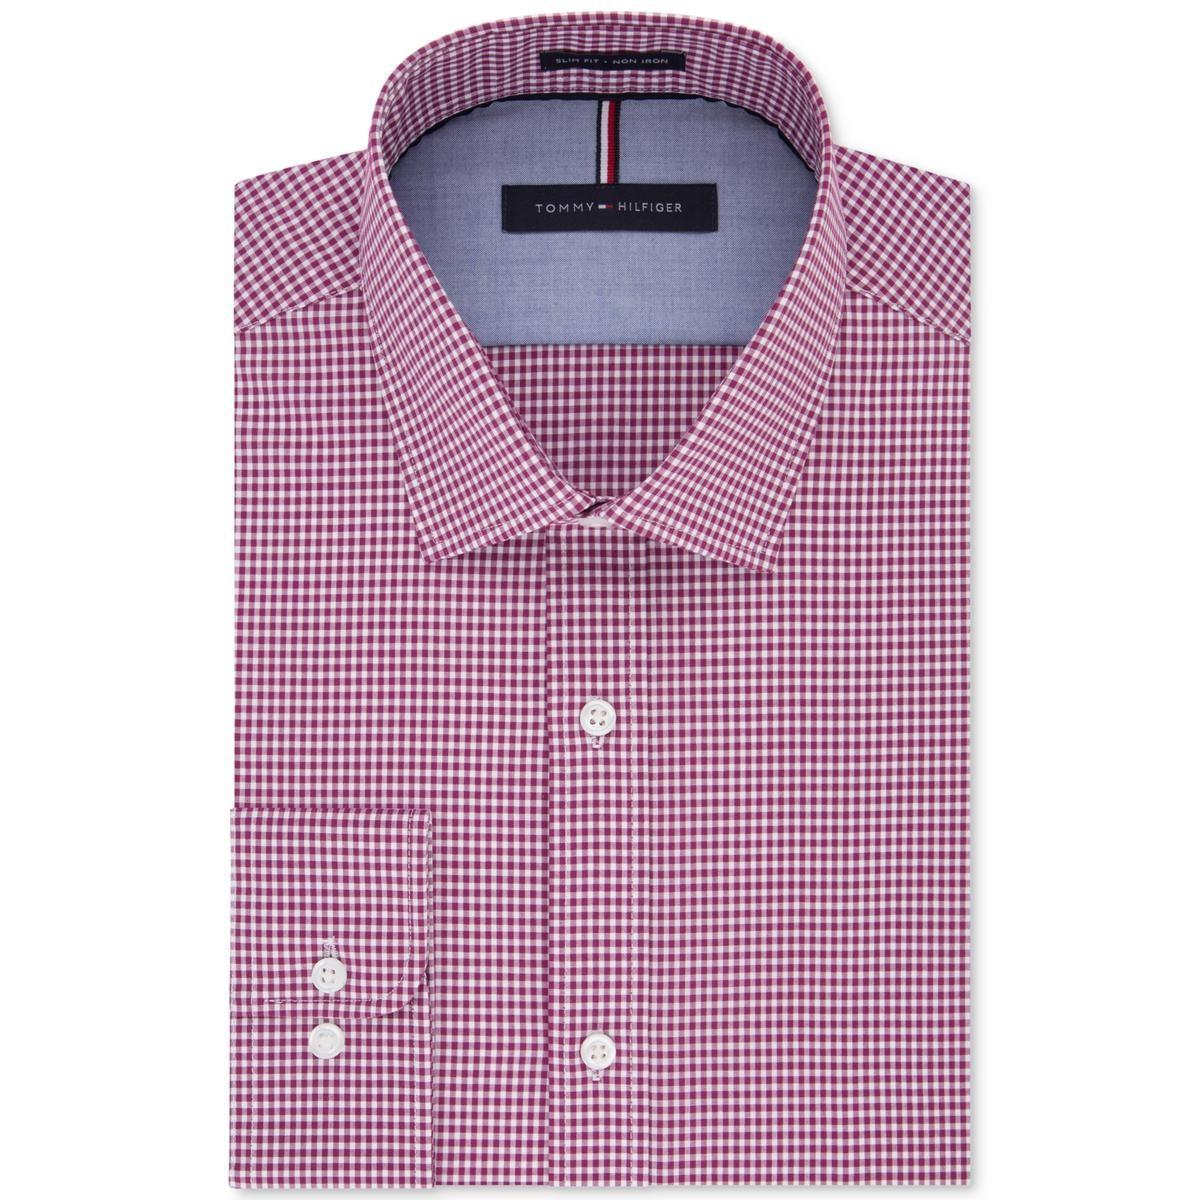 6dab023284a Tommy Hilfiger - Pink Big   Tall Gingham Non-iron Button-down Shirt for.  View fullscreen